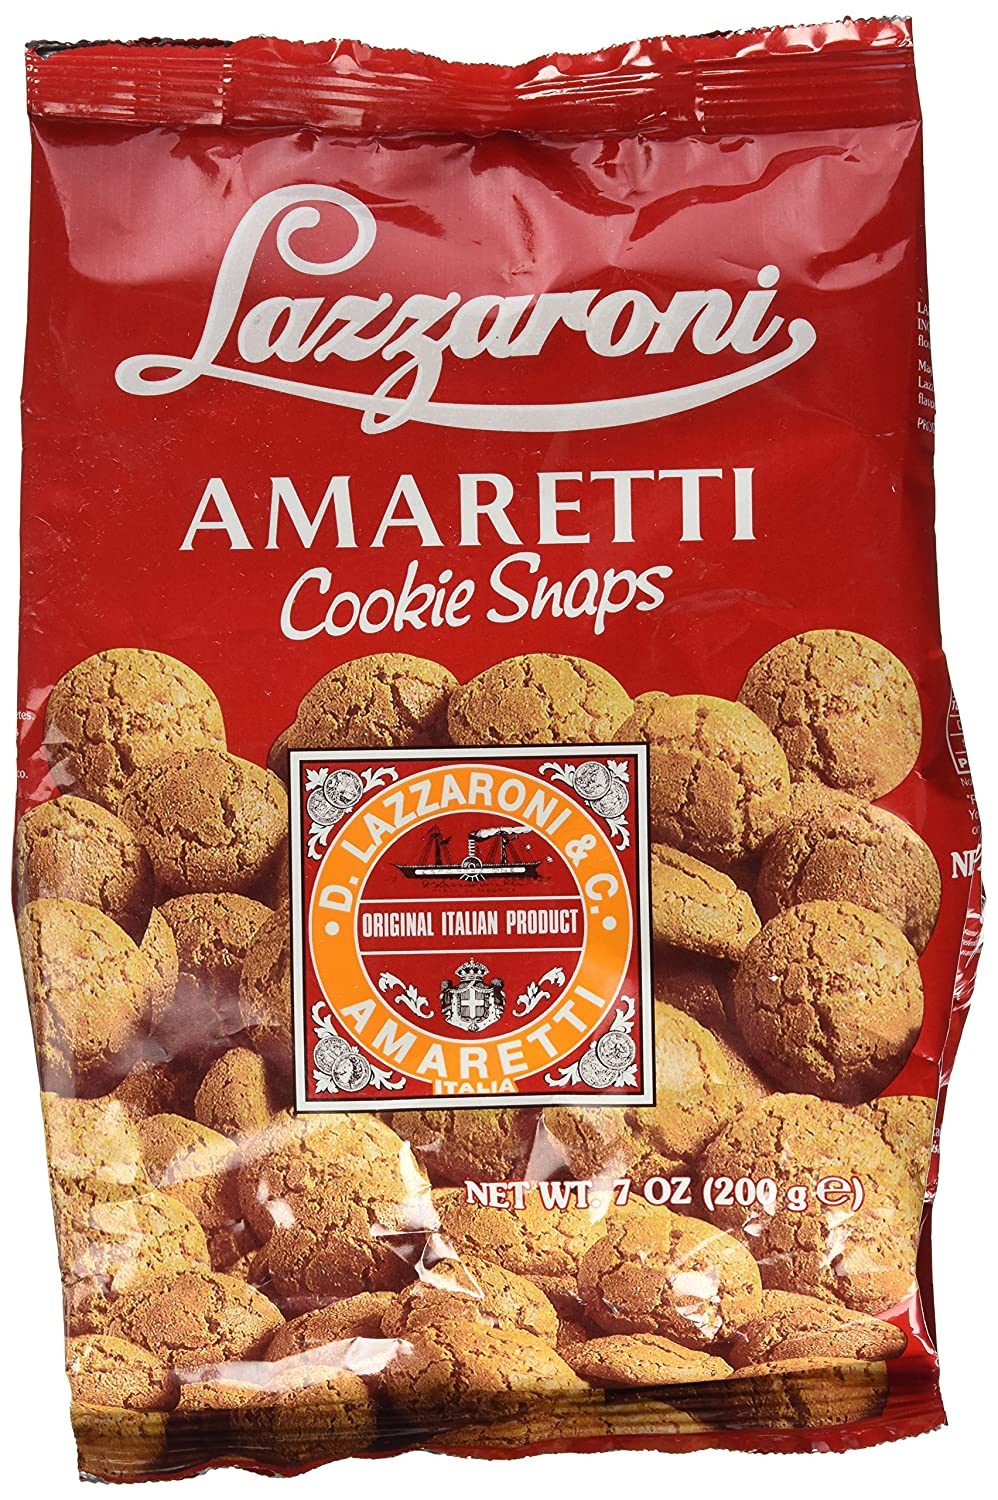 Amaretti Cookie Snaps by Lazzaroni (7 ounce)